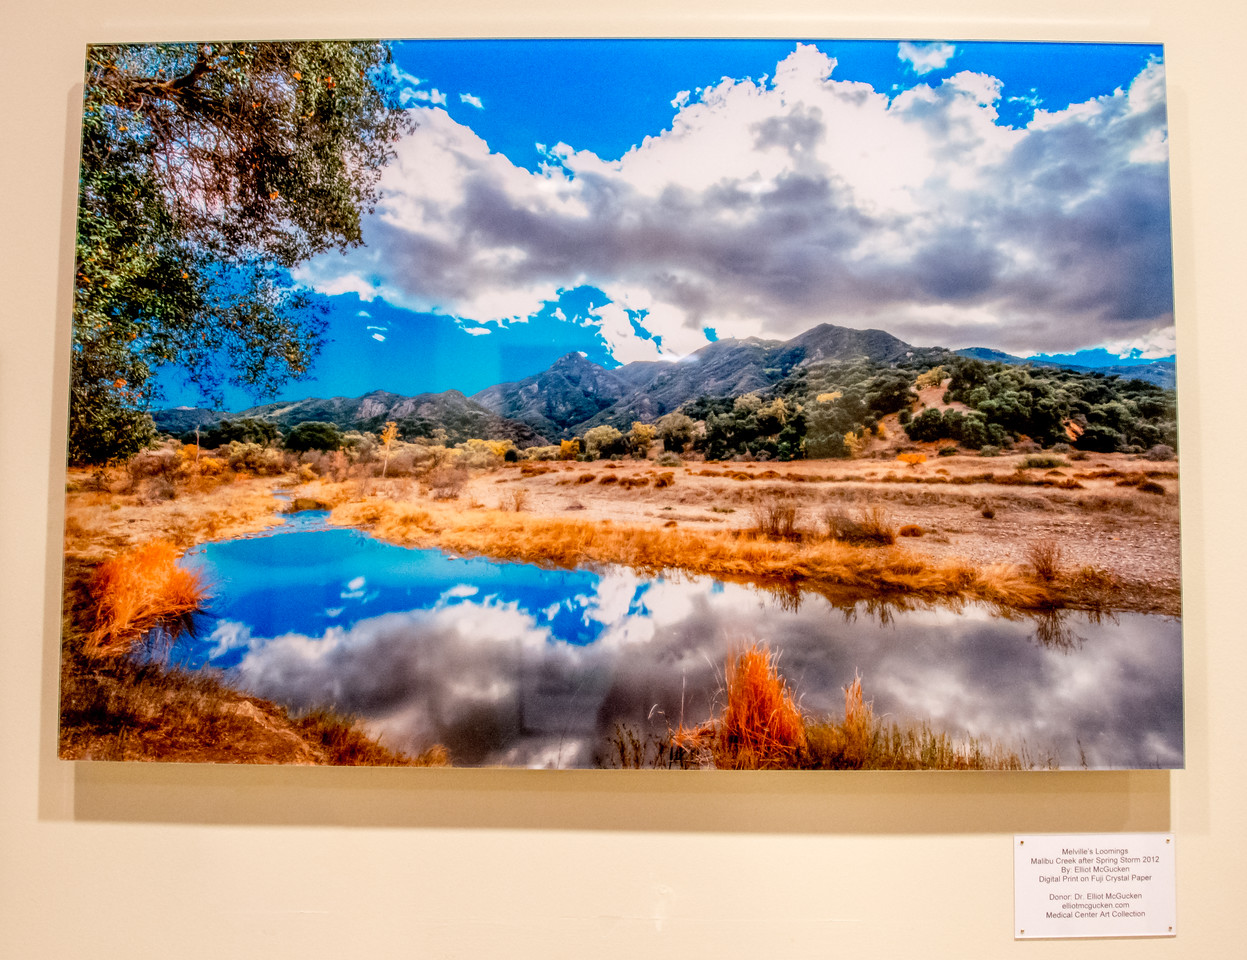 Dr. Elliot McGucken Fine Art Photography Los Angeles Gallery